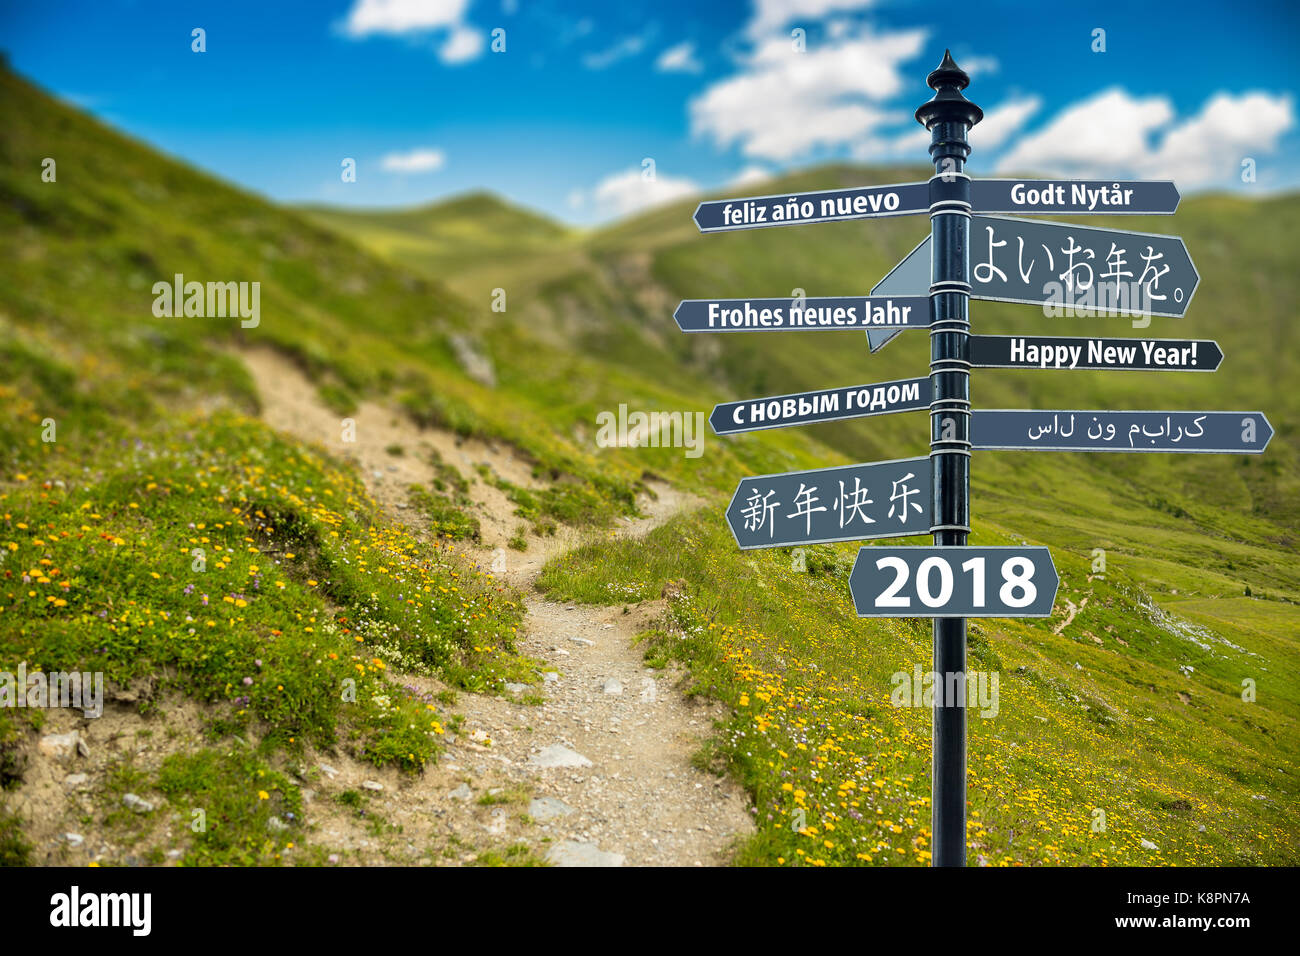 Signpost whit Happy New Year in many languages, Path to mountain in background - Stock Image